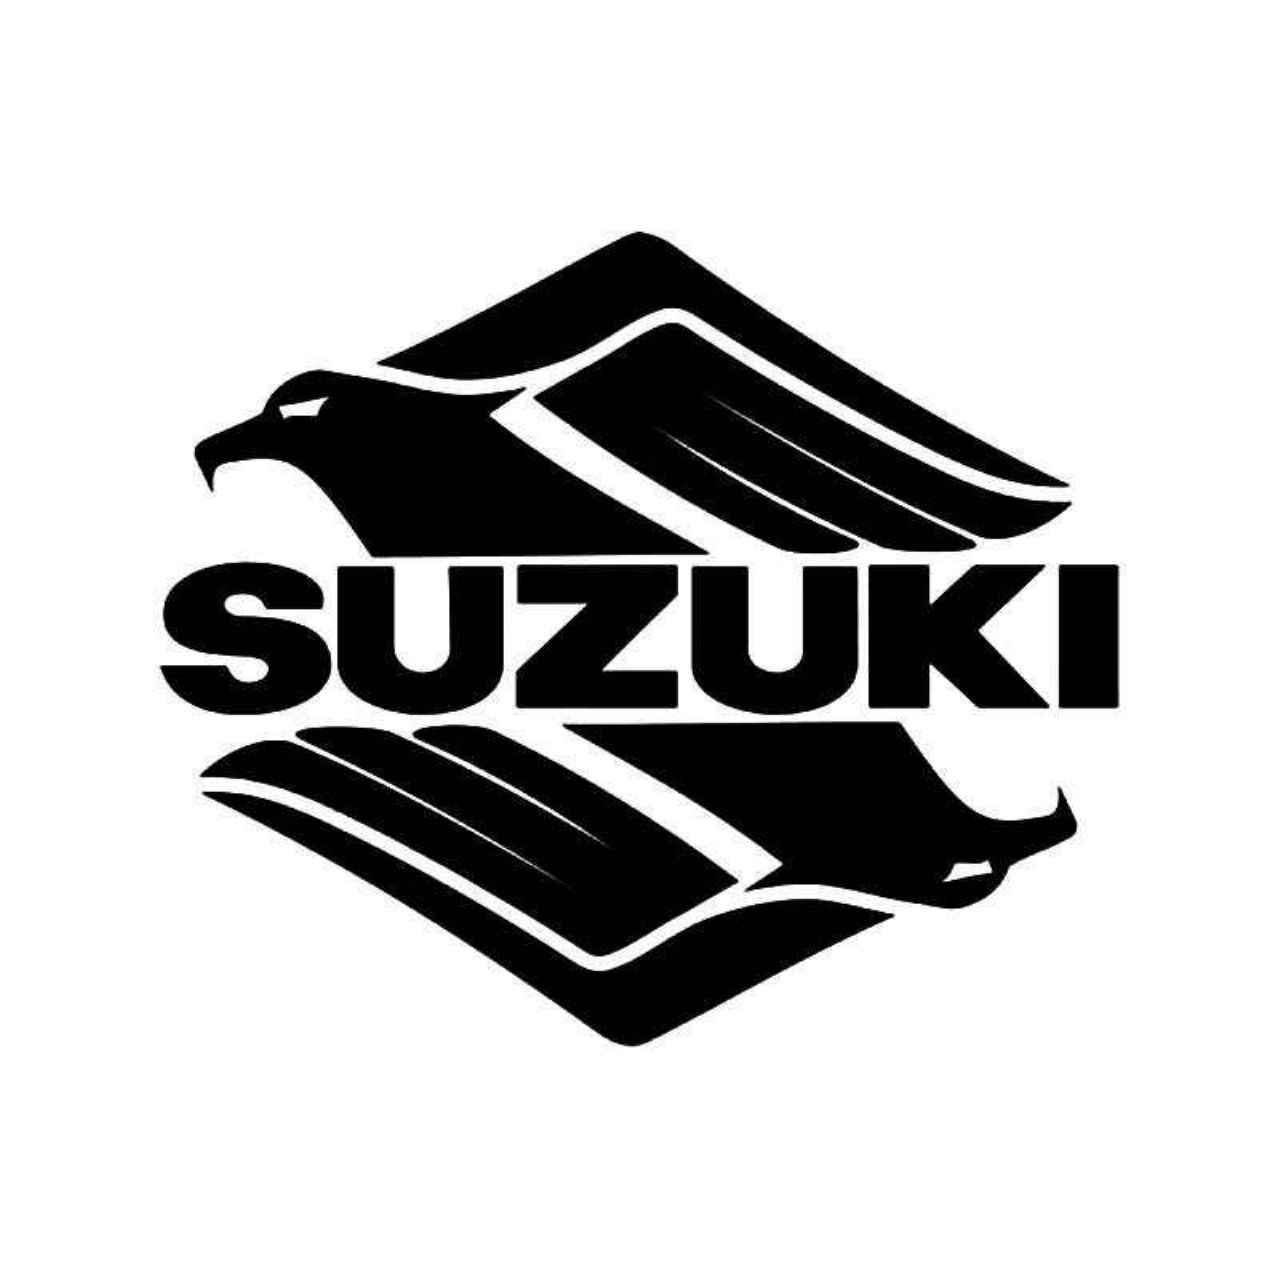 Suzuki intruder motorcycle vinyl decal sticker ballzbeatz com